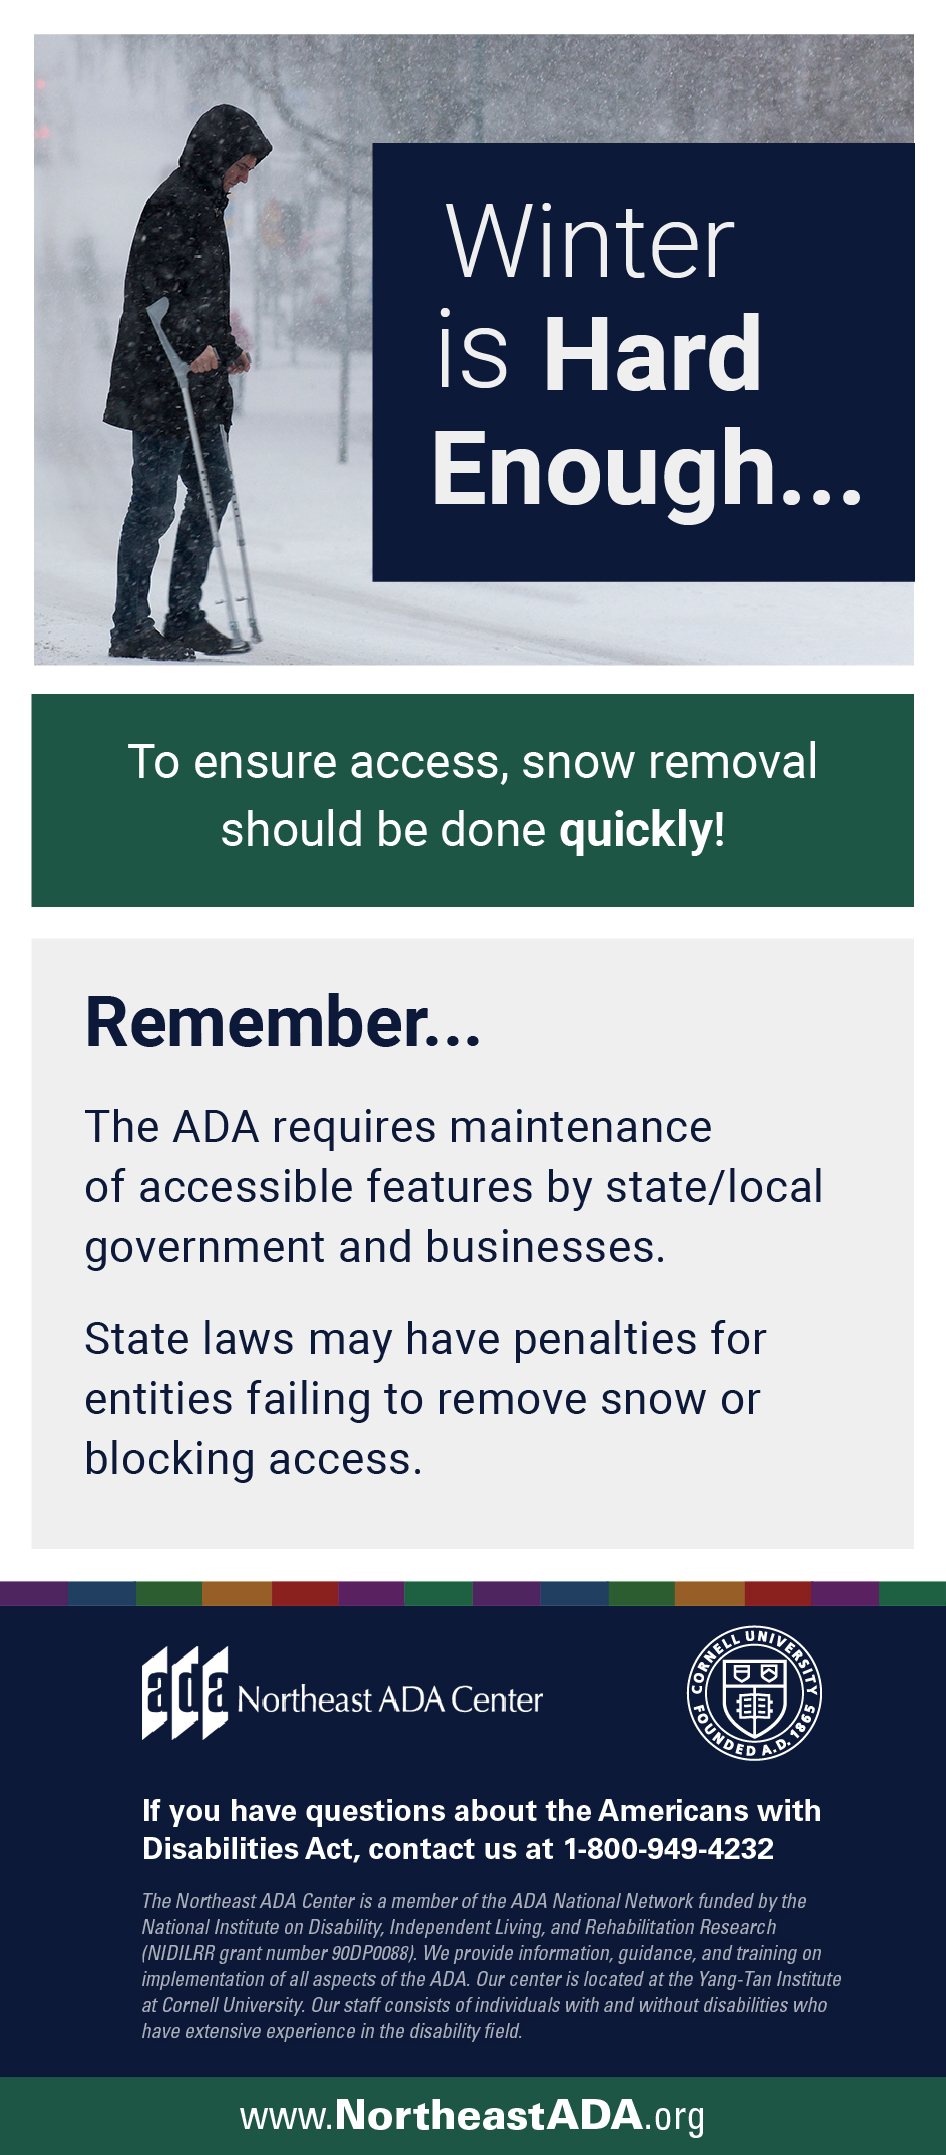 Infographic featuring a man using crutches walking through the snow.